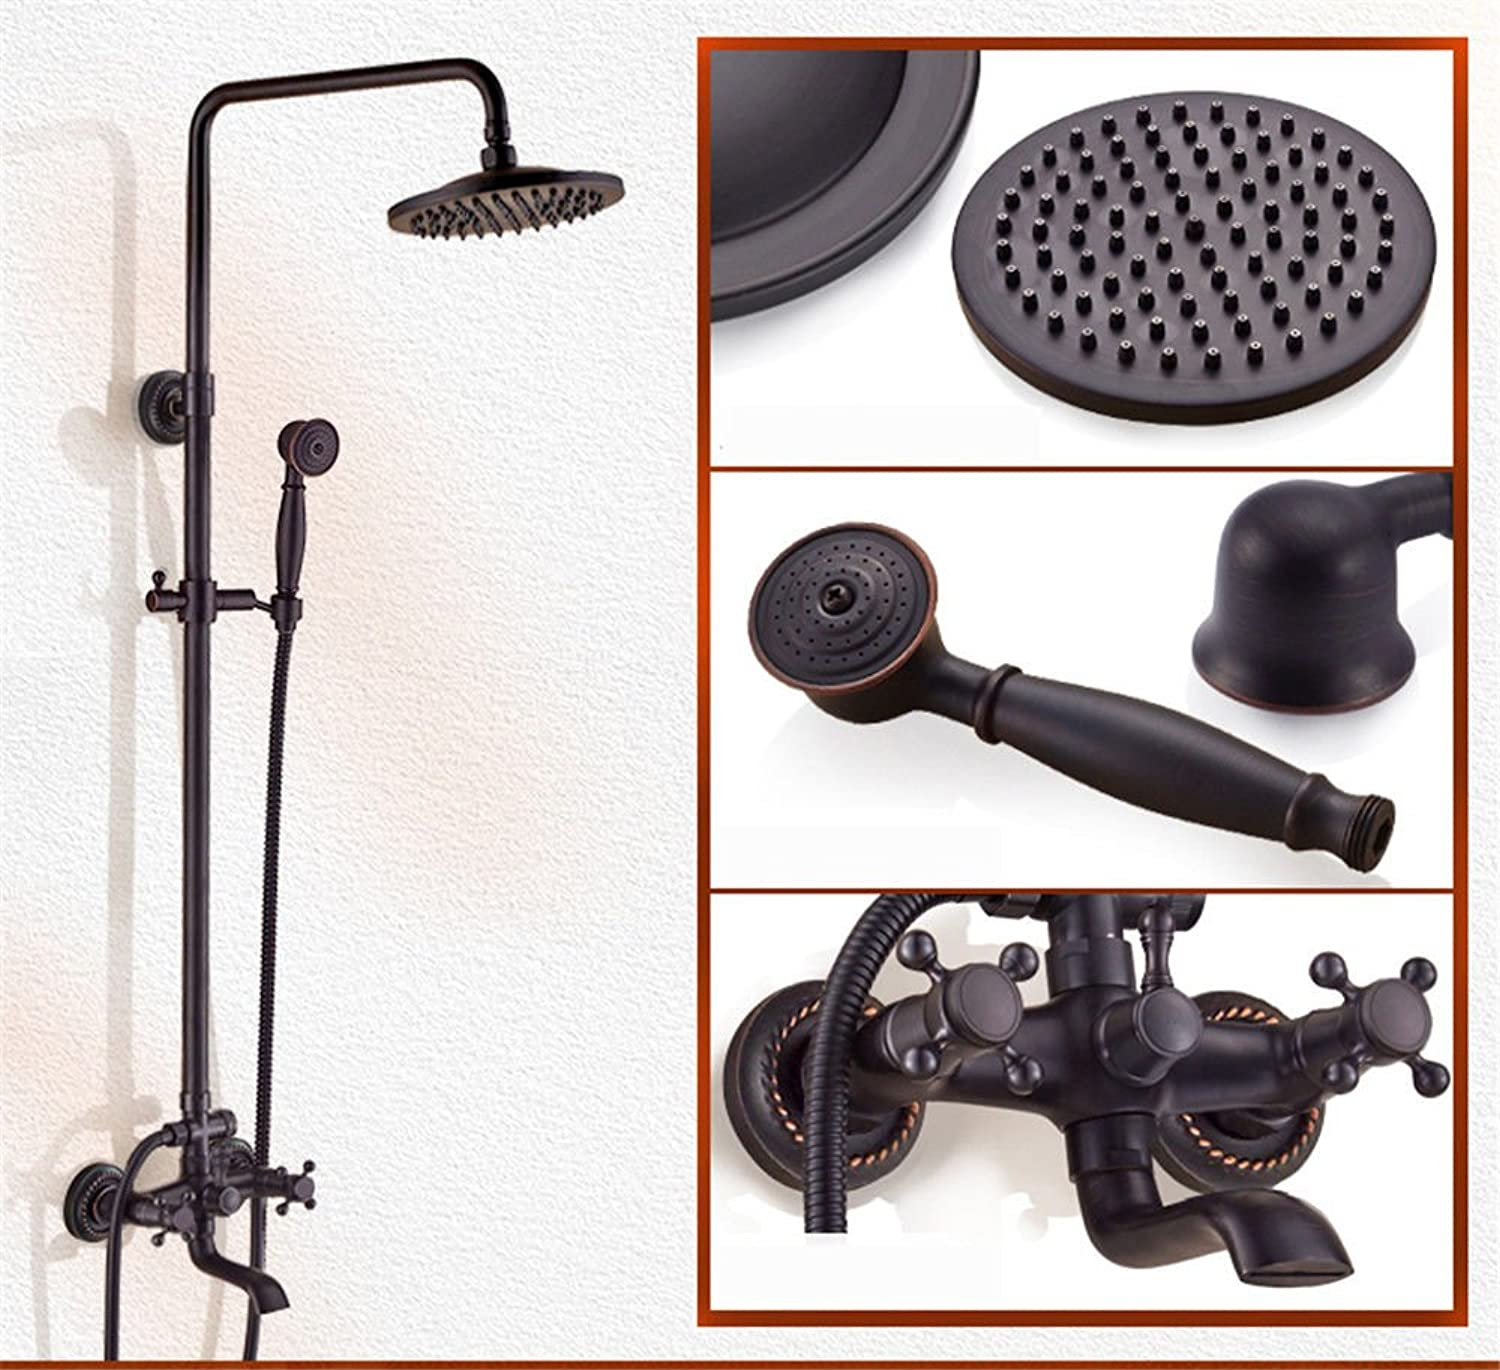 ETERNAL QUALITY Bathroom Sink Basin Tap Brass Mixer Tap Washroom Mixer Faucet Black shower kit full copper hot and cold faucets antique home Bathroom Wall shower Kitchen